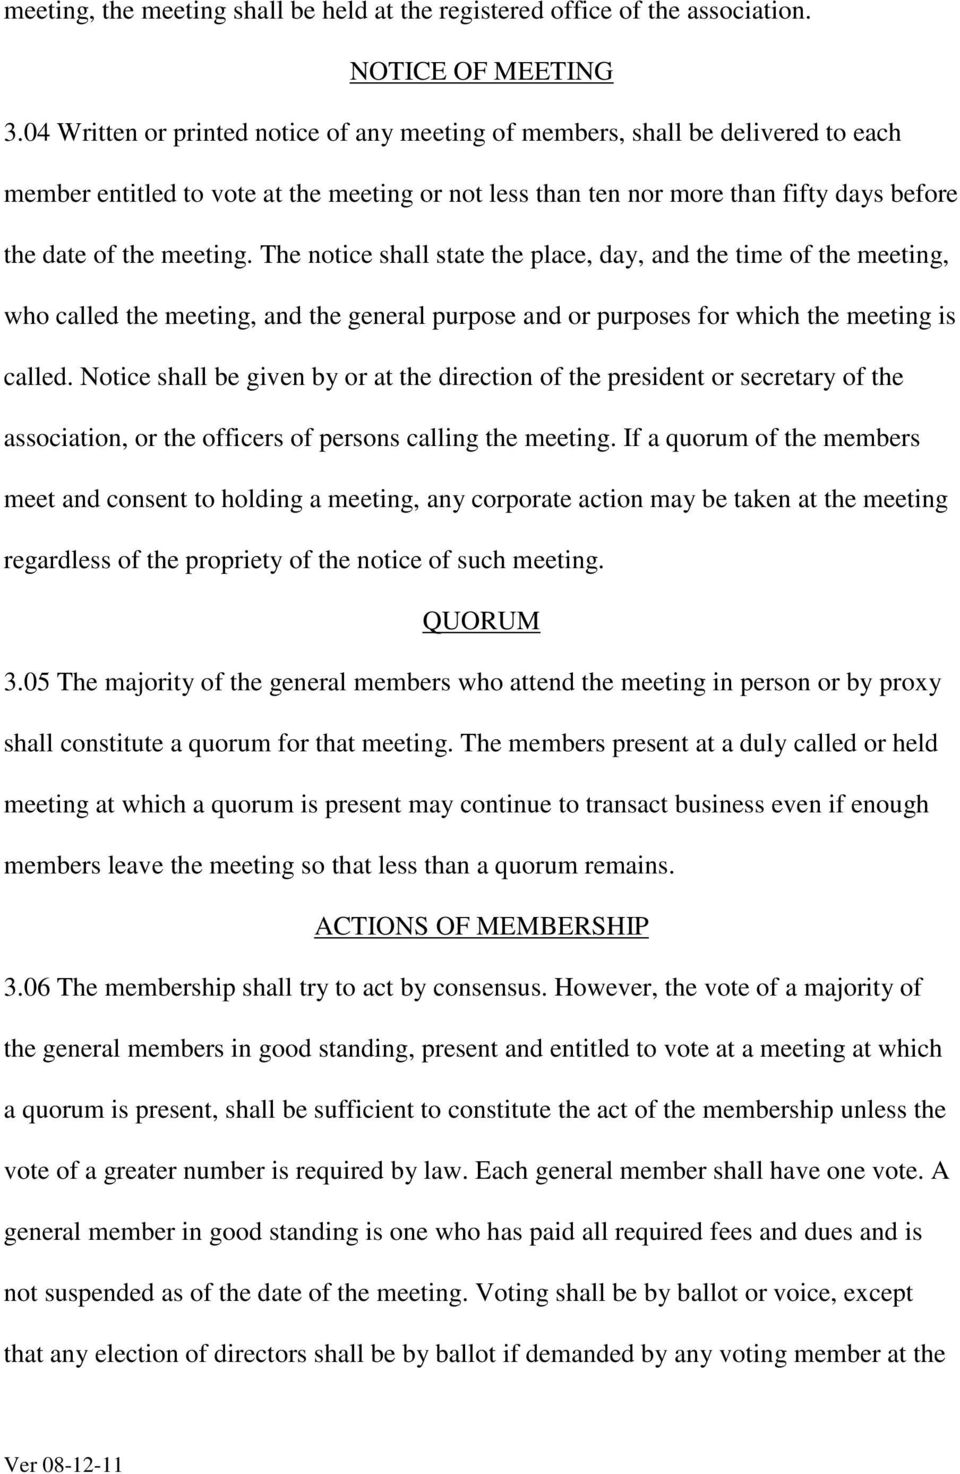 The notice shall state the place, day, and the time of the meeting, who called the meeting, and the general purpose and or purposes for which the meeting is called.